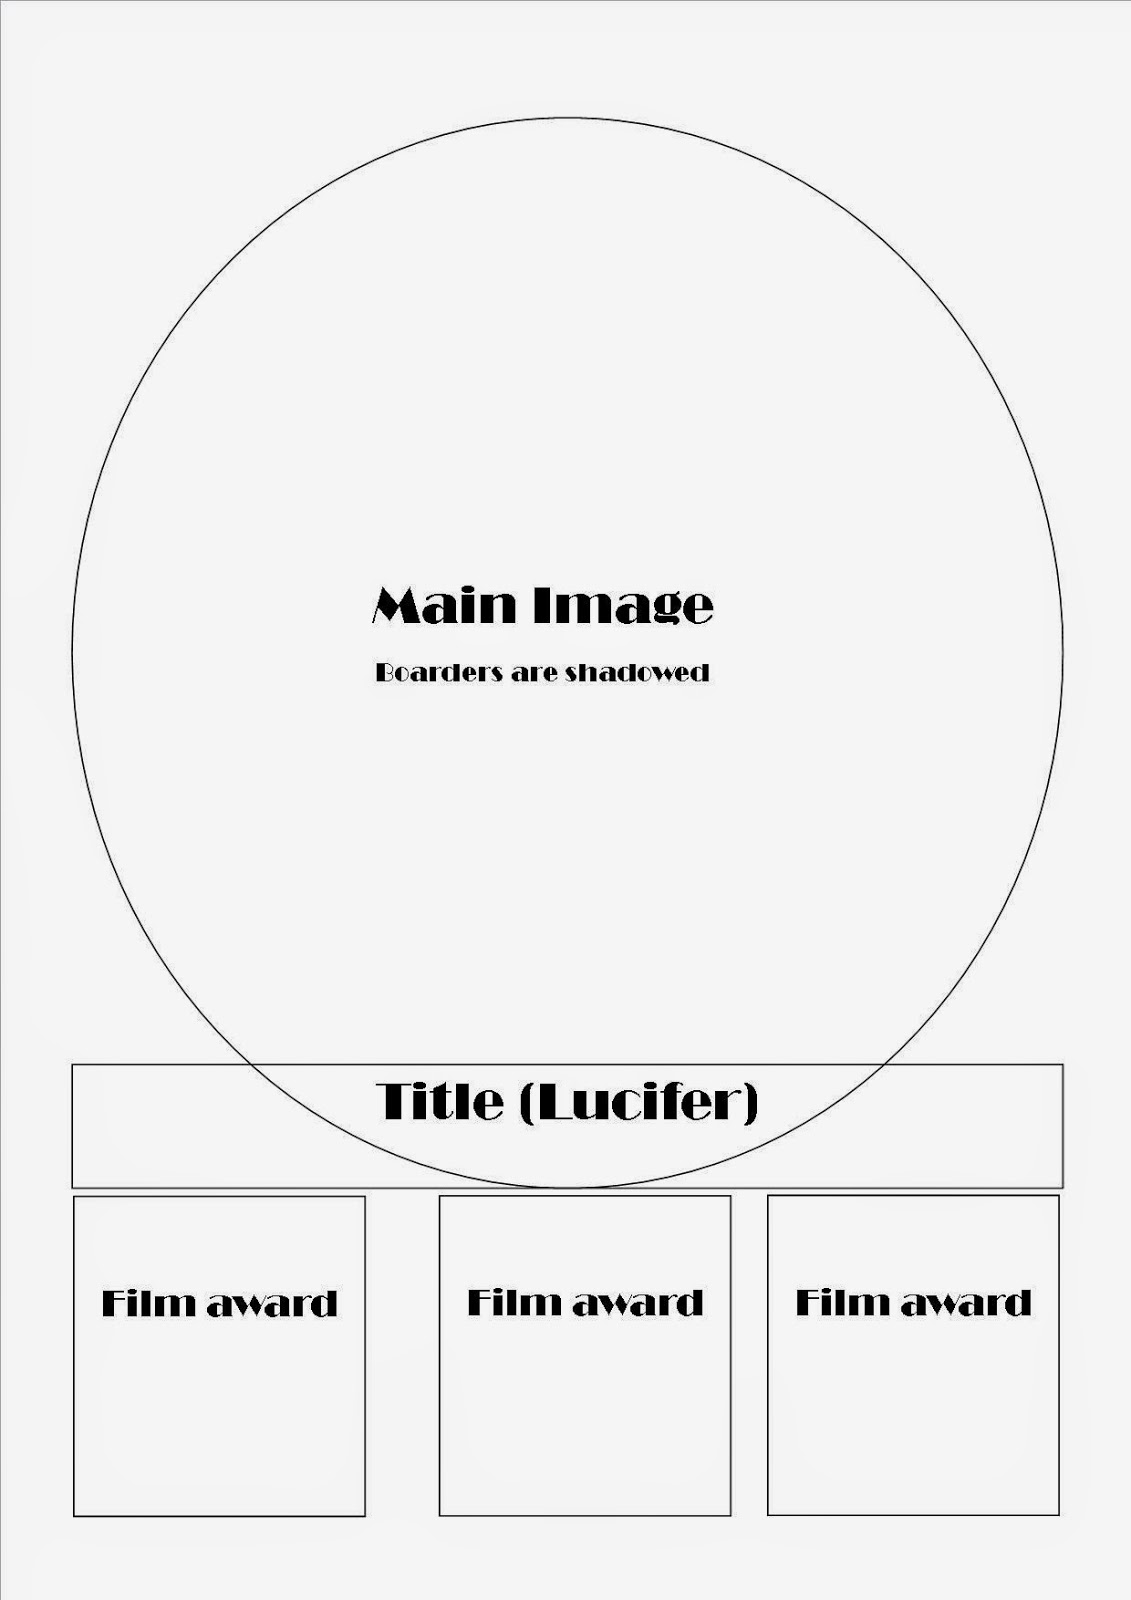 A2 media work : Drafting and planning - Film poster template